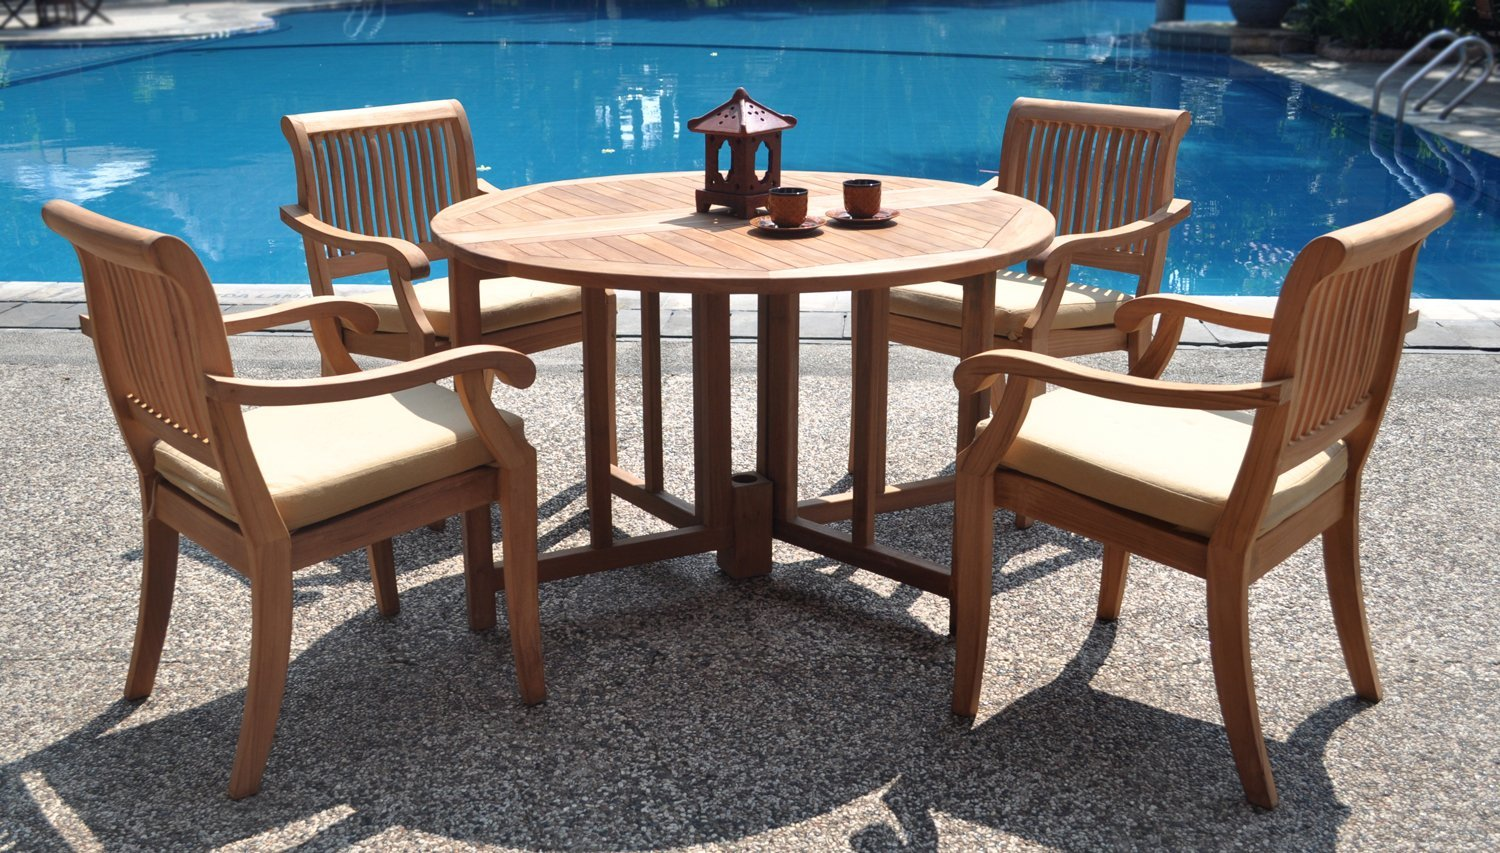 Outdoor Teak Furniture Dubai Uae